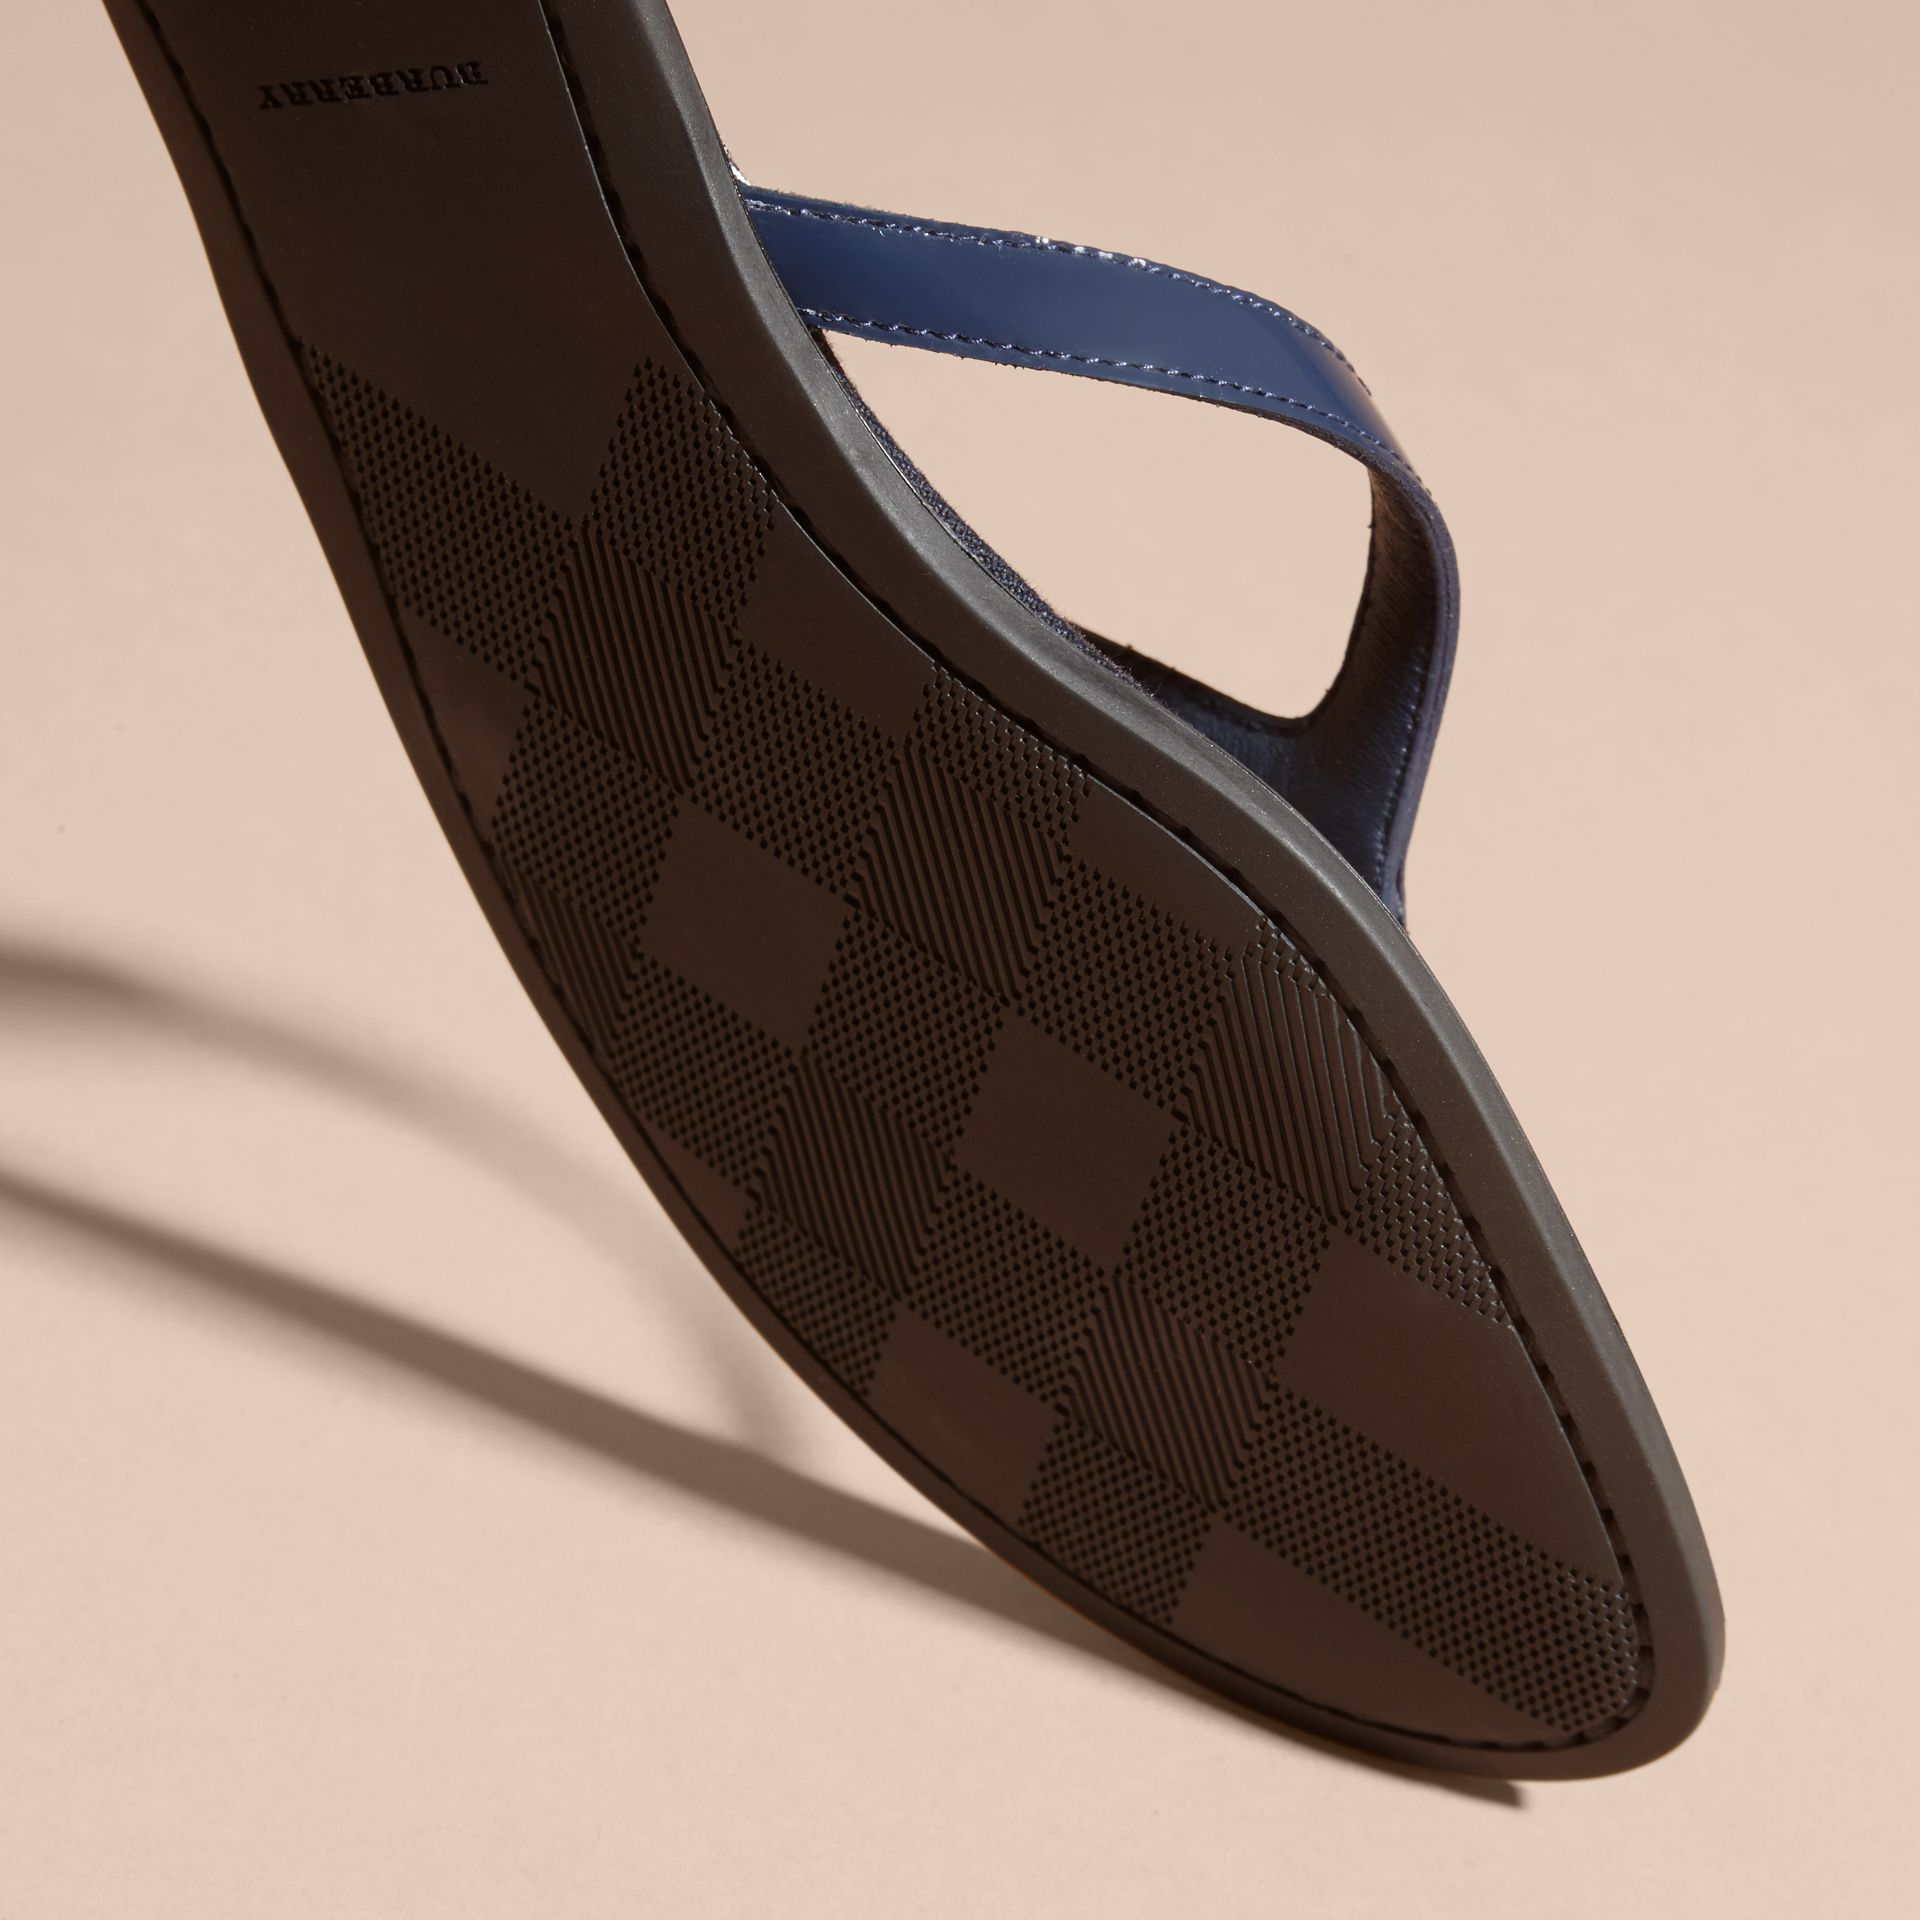 House Check and Patent Leather Sandals in Indigo Blue - Women | Burberry Singapore - gallery image 5